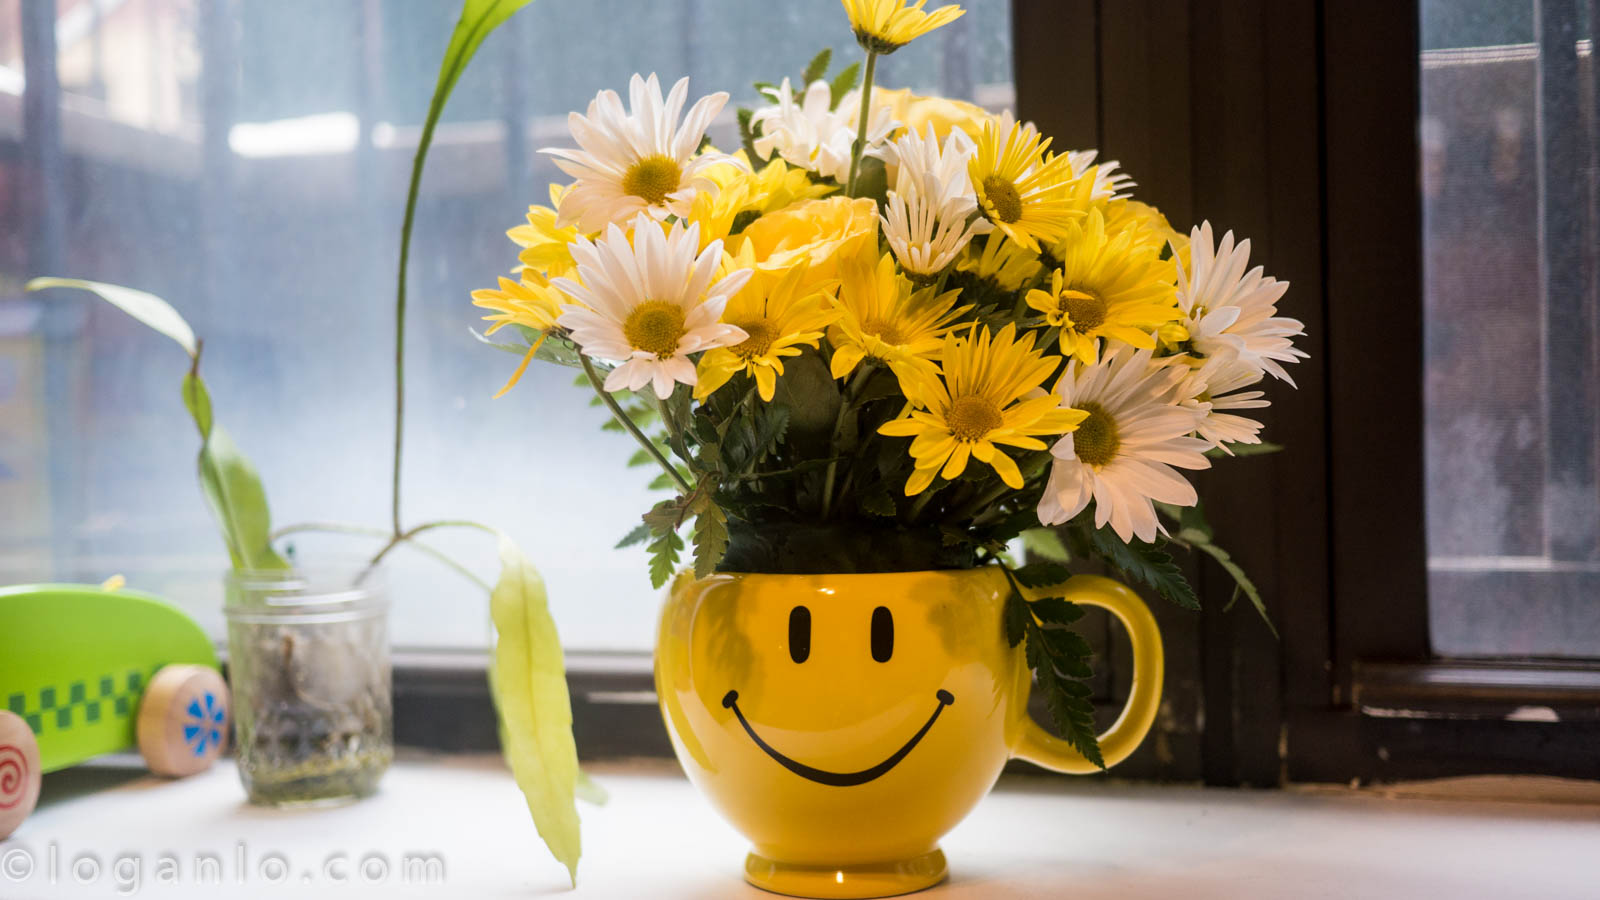 Flowers in a Smiley Face Vase – On (or close to) Schedule